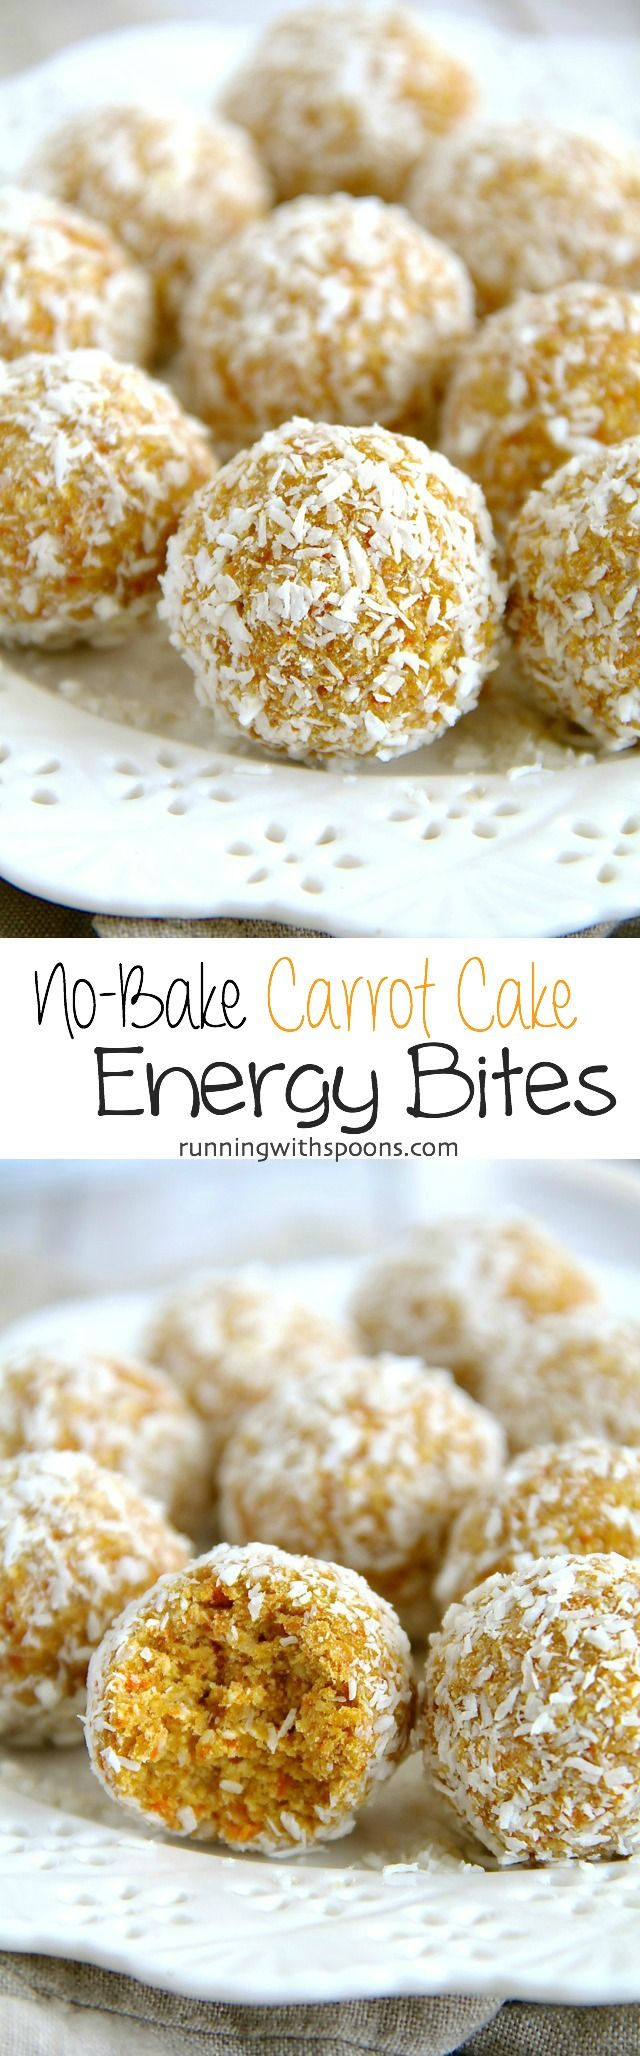 No-Bake Carrot Cake Energy Bites |from runningwithspoons.com !!!! YUM!!!!!! Best energy bites ever!! That combo & ratio of spices sounds wonderful !!A delicious desert in a portable, no bake bite that take just 10 minutes to make!?!? Yes please!!